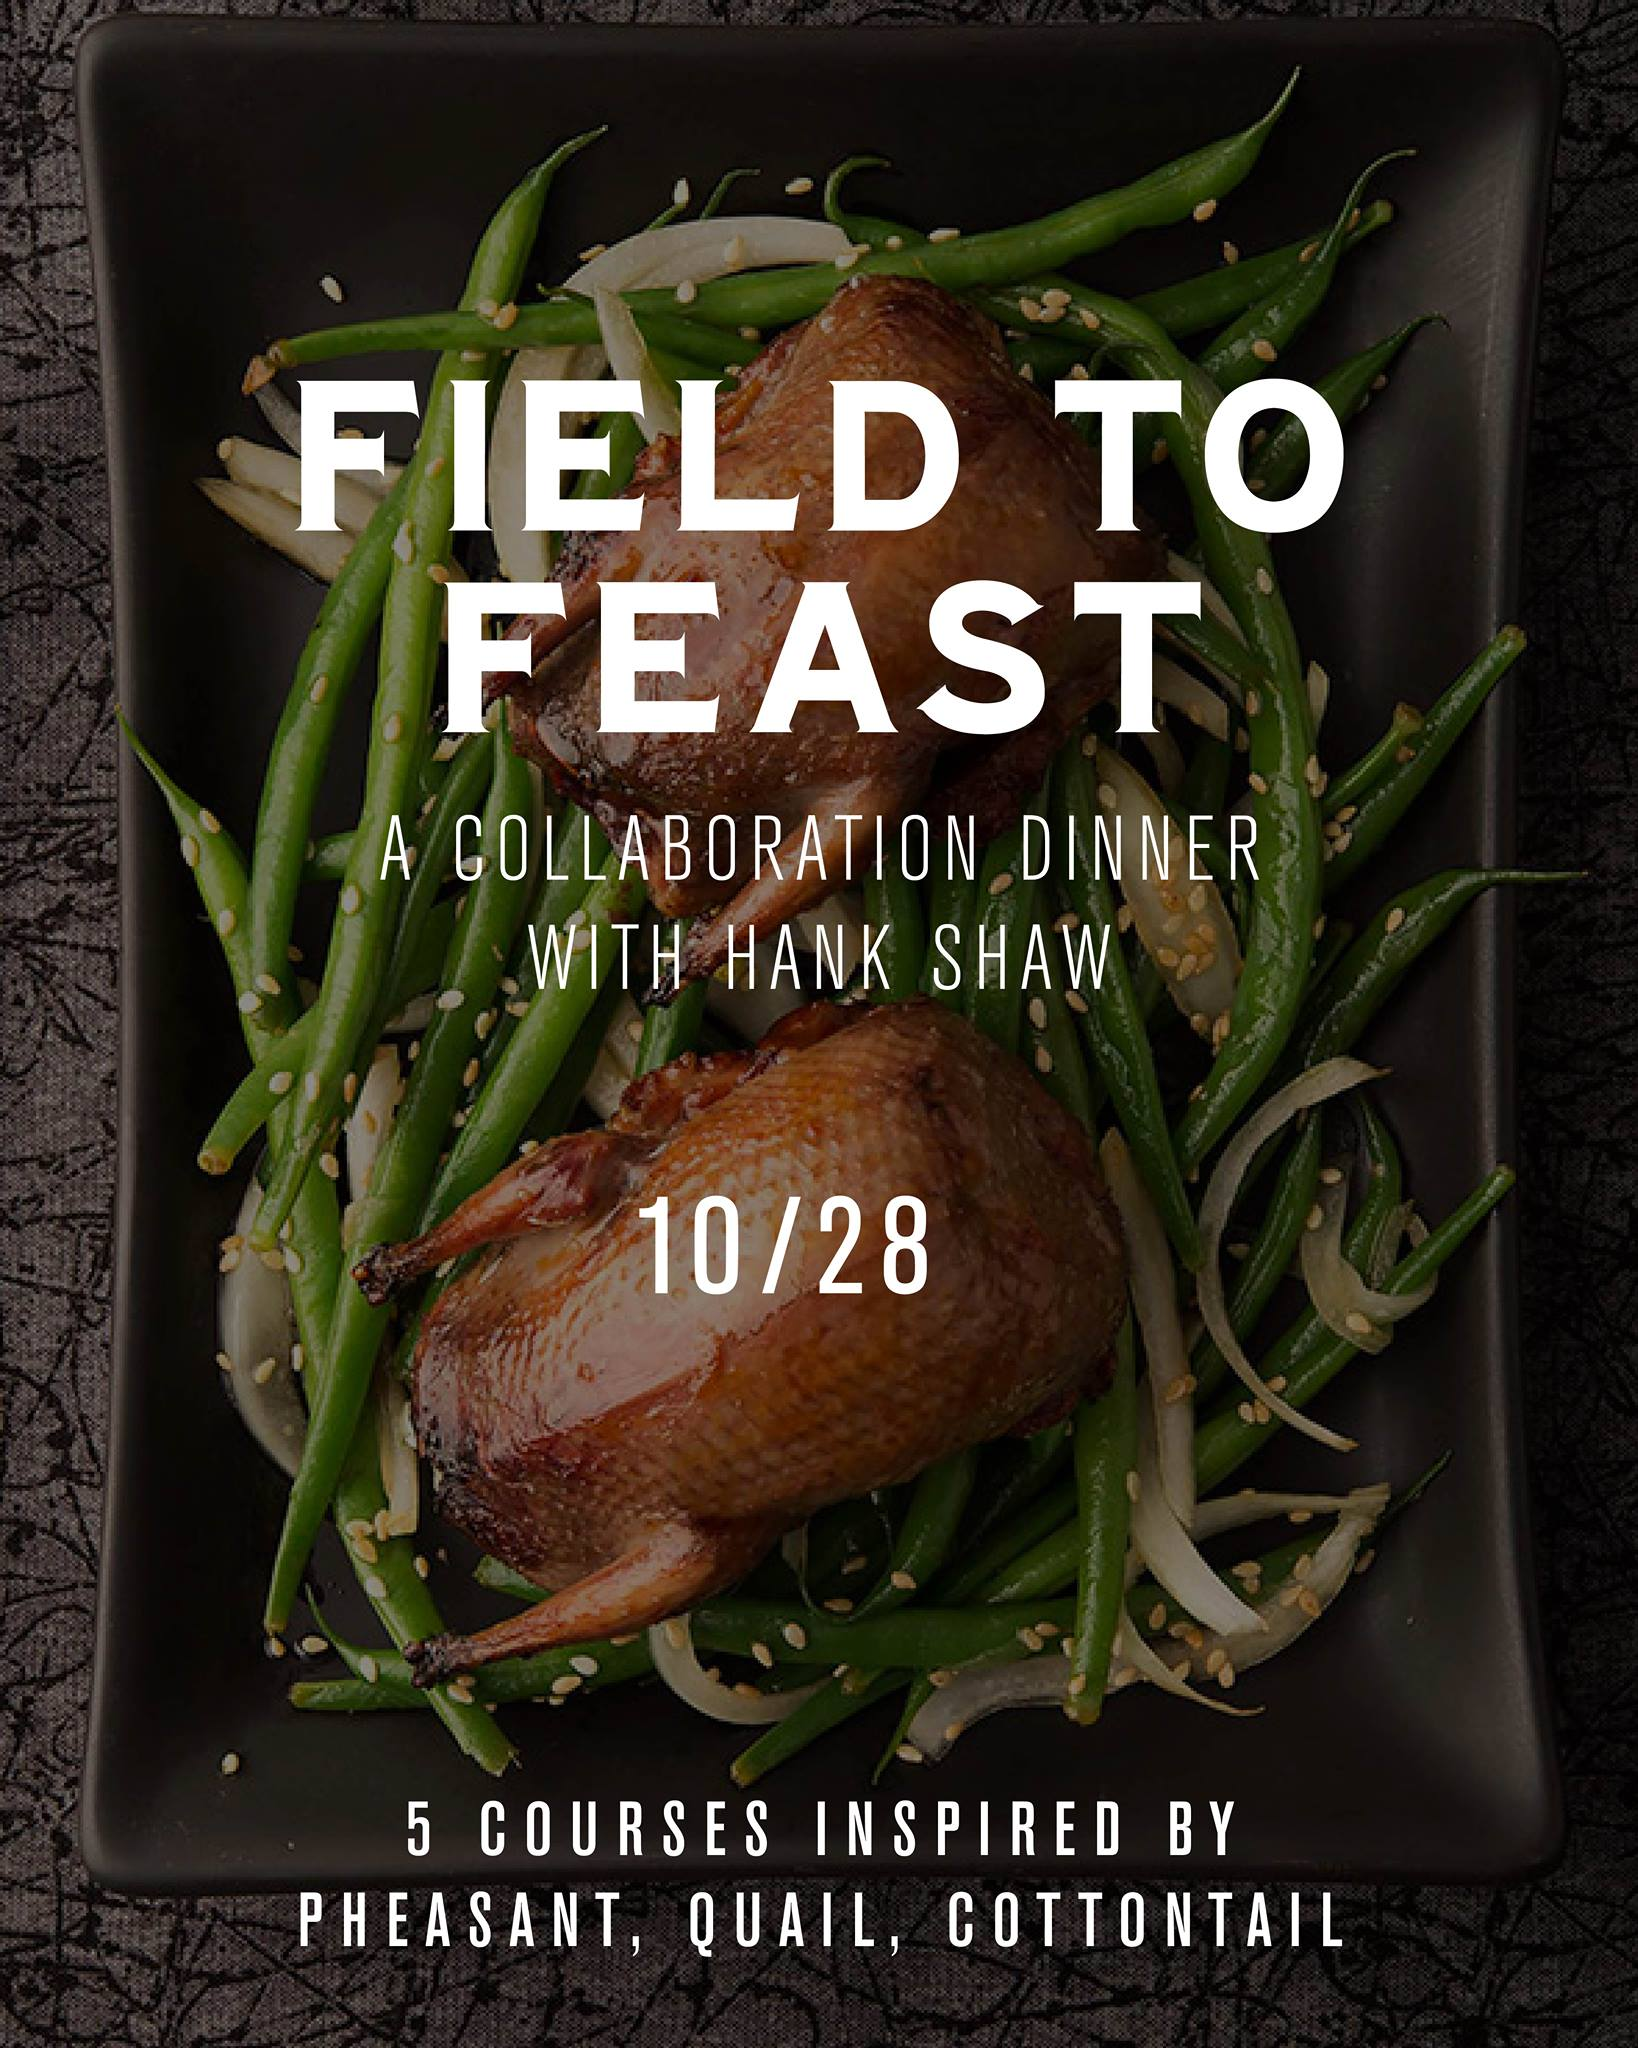 Field to Feast: Hank Shaw Dinner - 1870 Mag